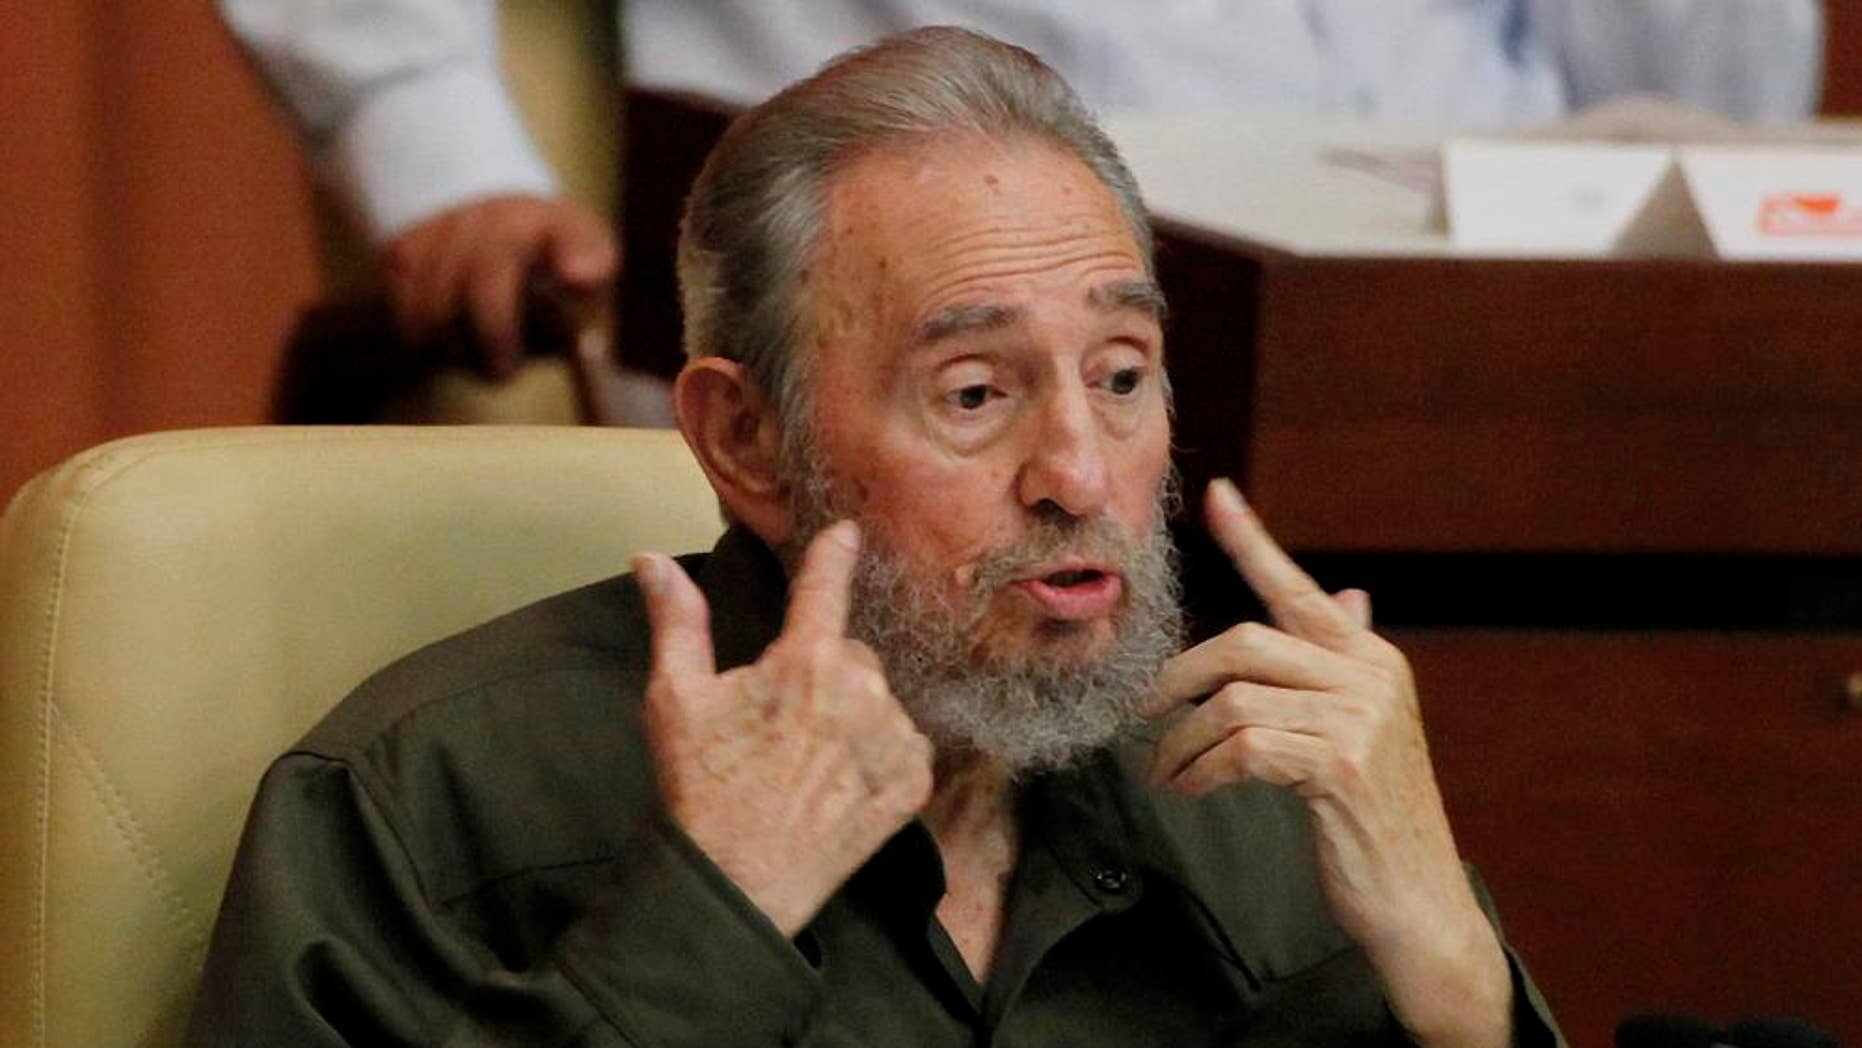 Fidel Castro speaks at a special session of parliament in his first official government appearance in front of lawmakers in four years in Havana, Cuba, Saturday Aug. 7, 2010. Castro, who turns 84 on Aug. 13, is making near daily appearances in and around Havana, after spending four years almost completely out of the public eye following emergency intestinal surgery that forced him to cede power to his younger brother Raul.  (AP Photo/Javier Galeano)